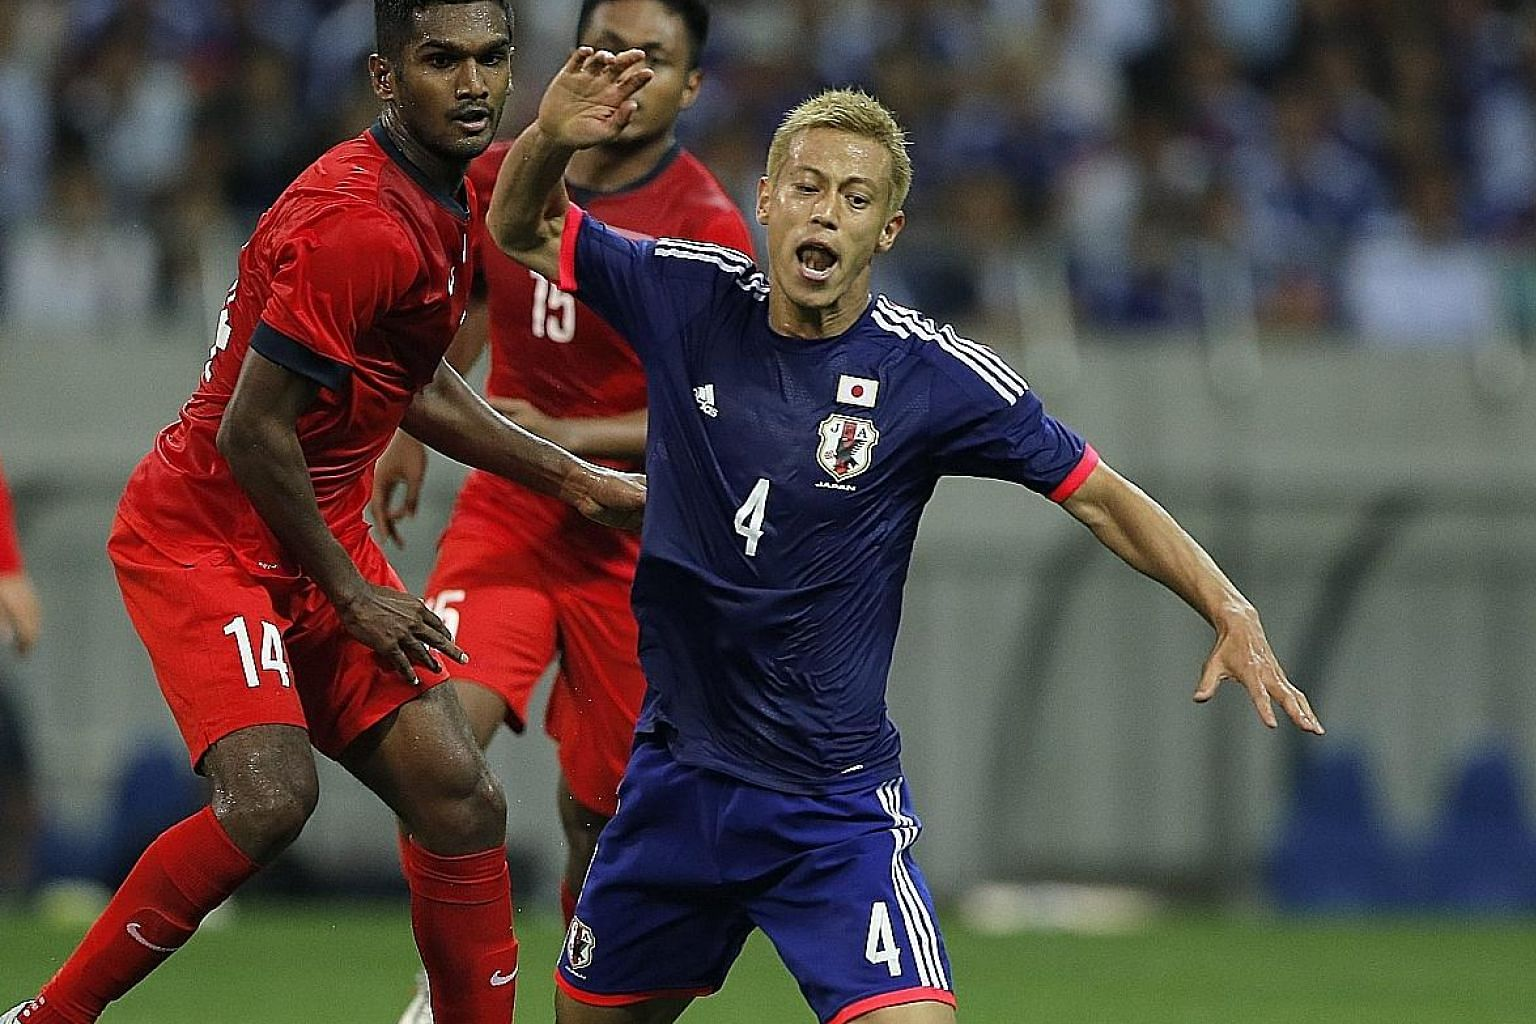 Japanese players, such as Keisuke Honda (right) who featured in a recent World Cup qualifier against Singapore that ended 0-0, have proven themselves to be good enough to ply their trade in Europe.